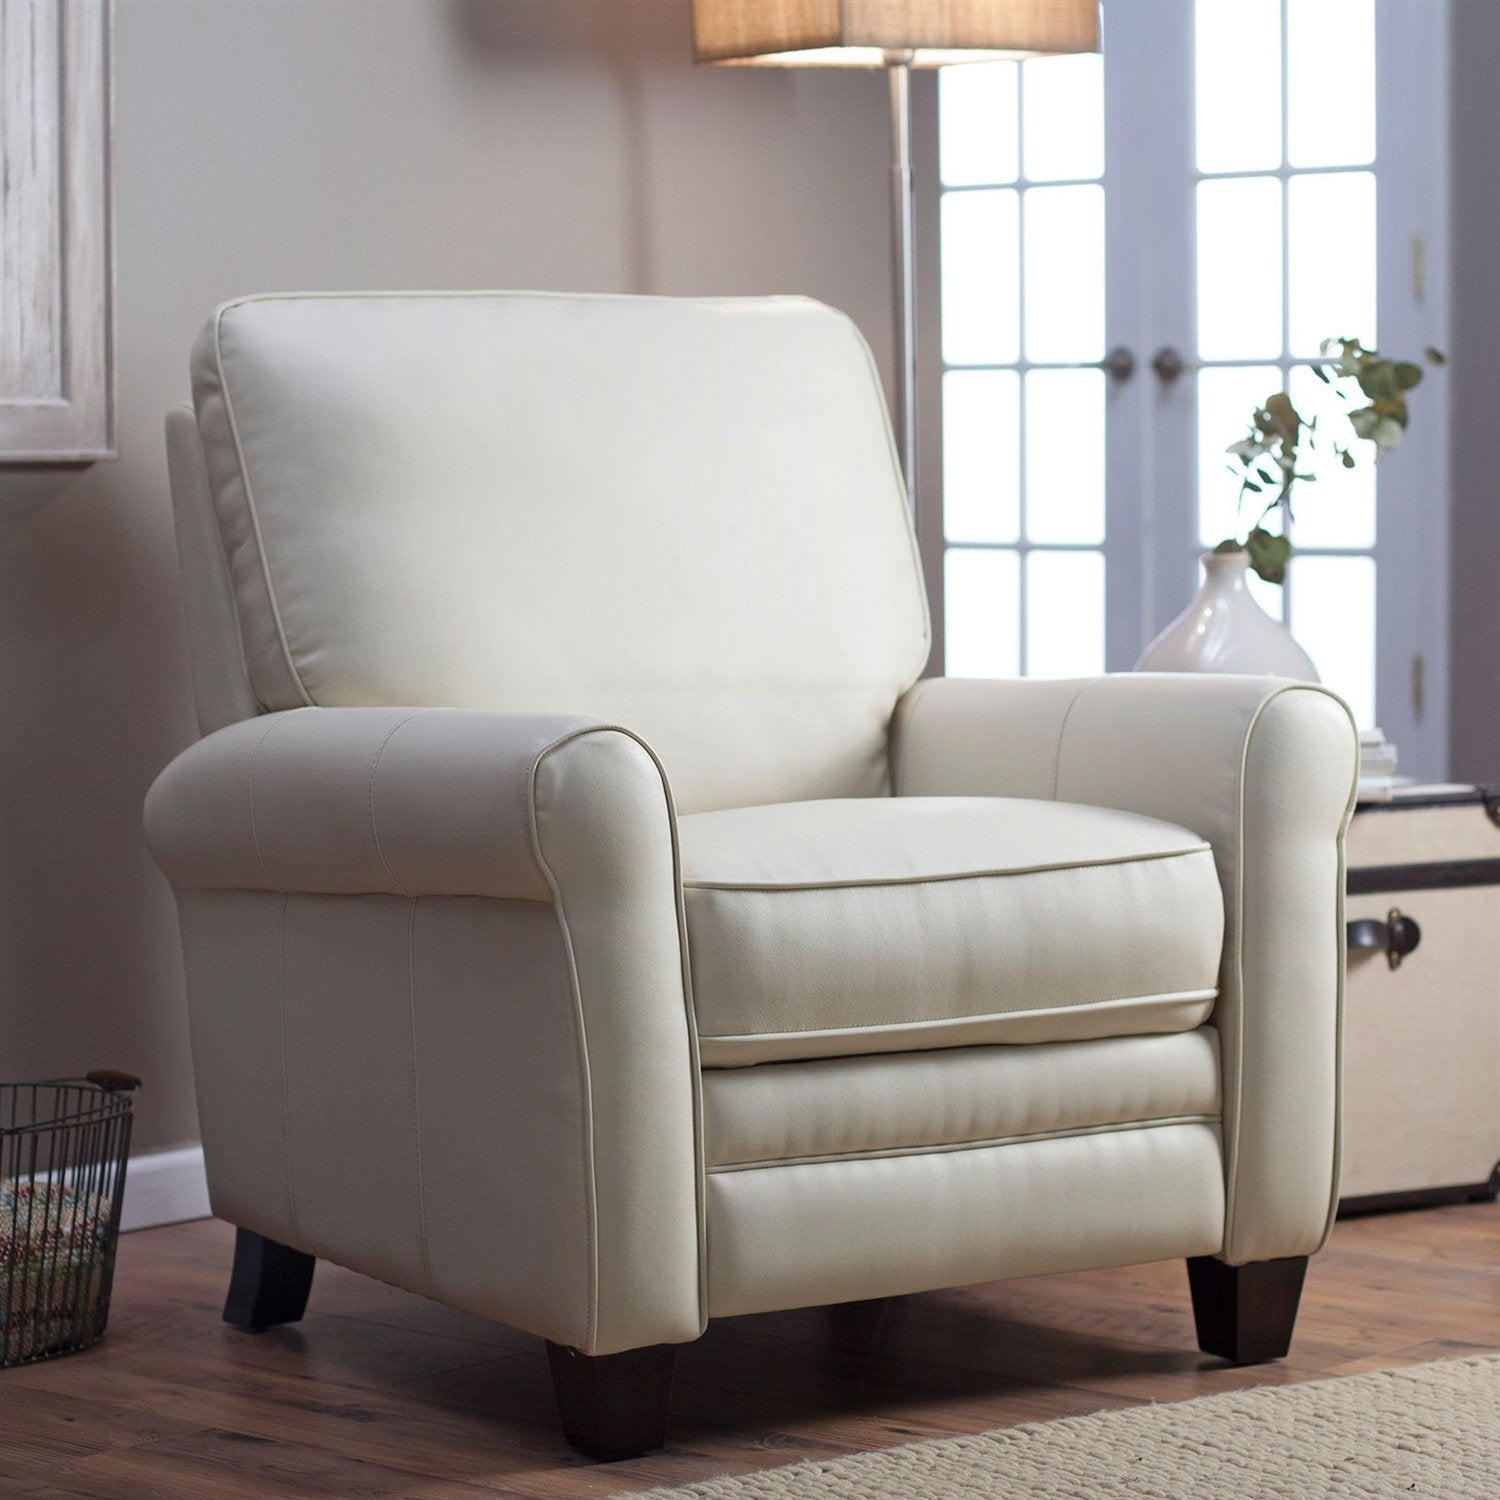 Beautiful Soft Cream Bonded Leather Upholstered Club Chair Recliner With Espresso Legs